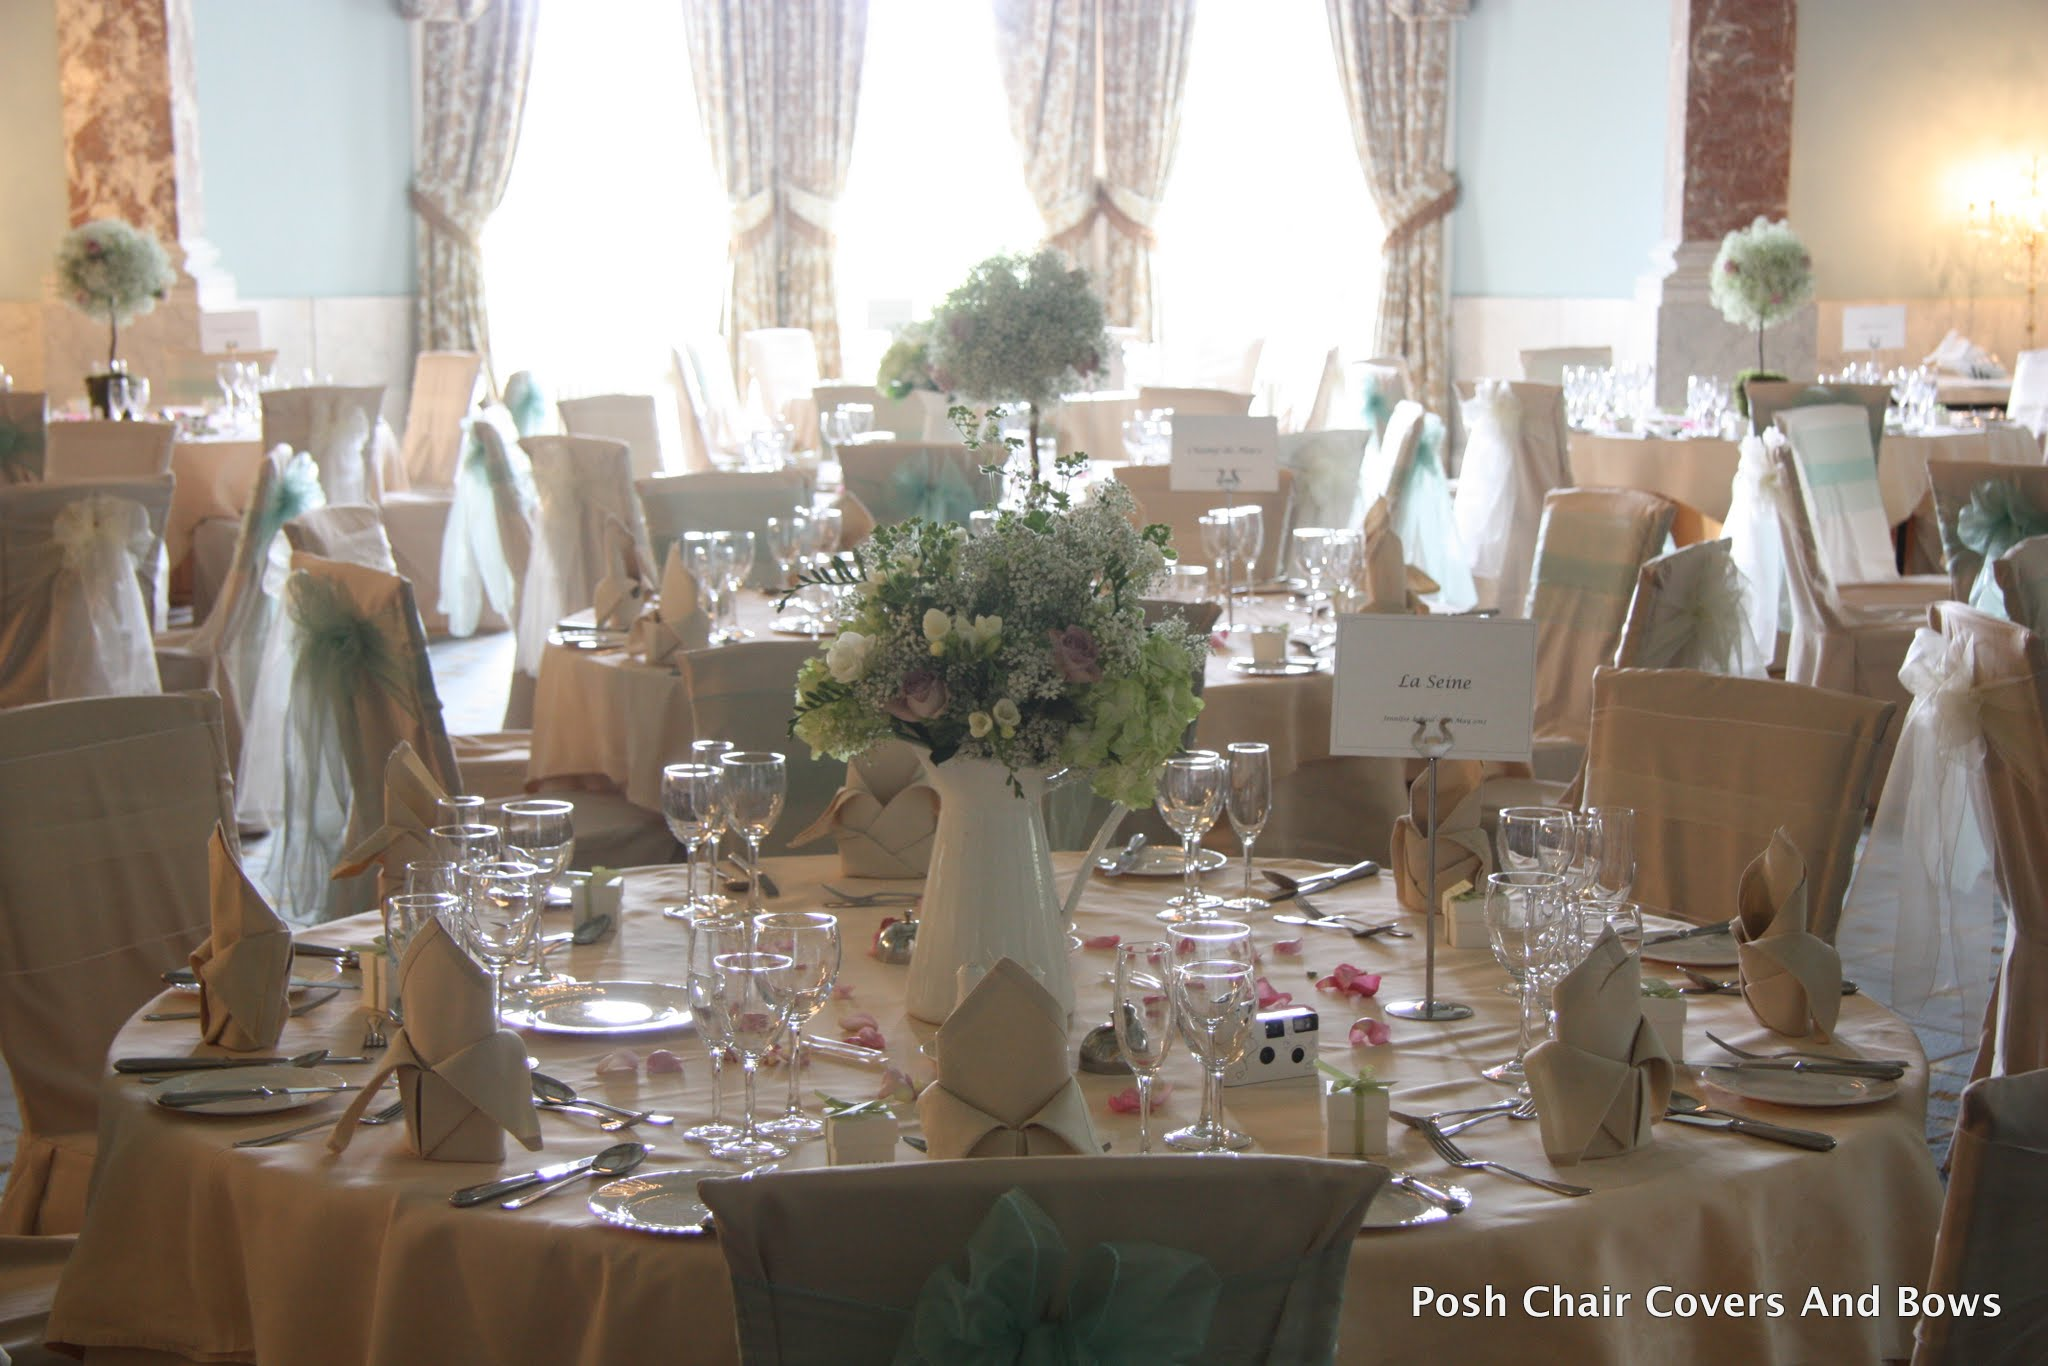 chair covers wedding london patio table chairs posh bows chiavari flower wall hire wynyard hall sedgefield